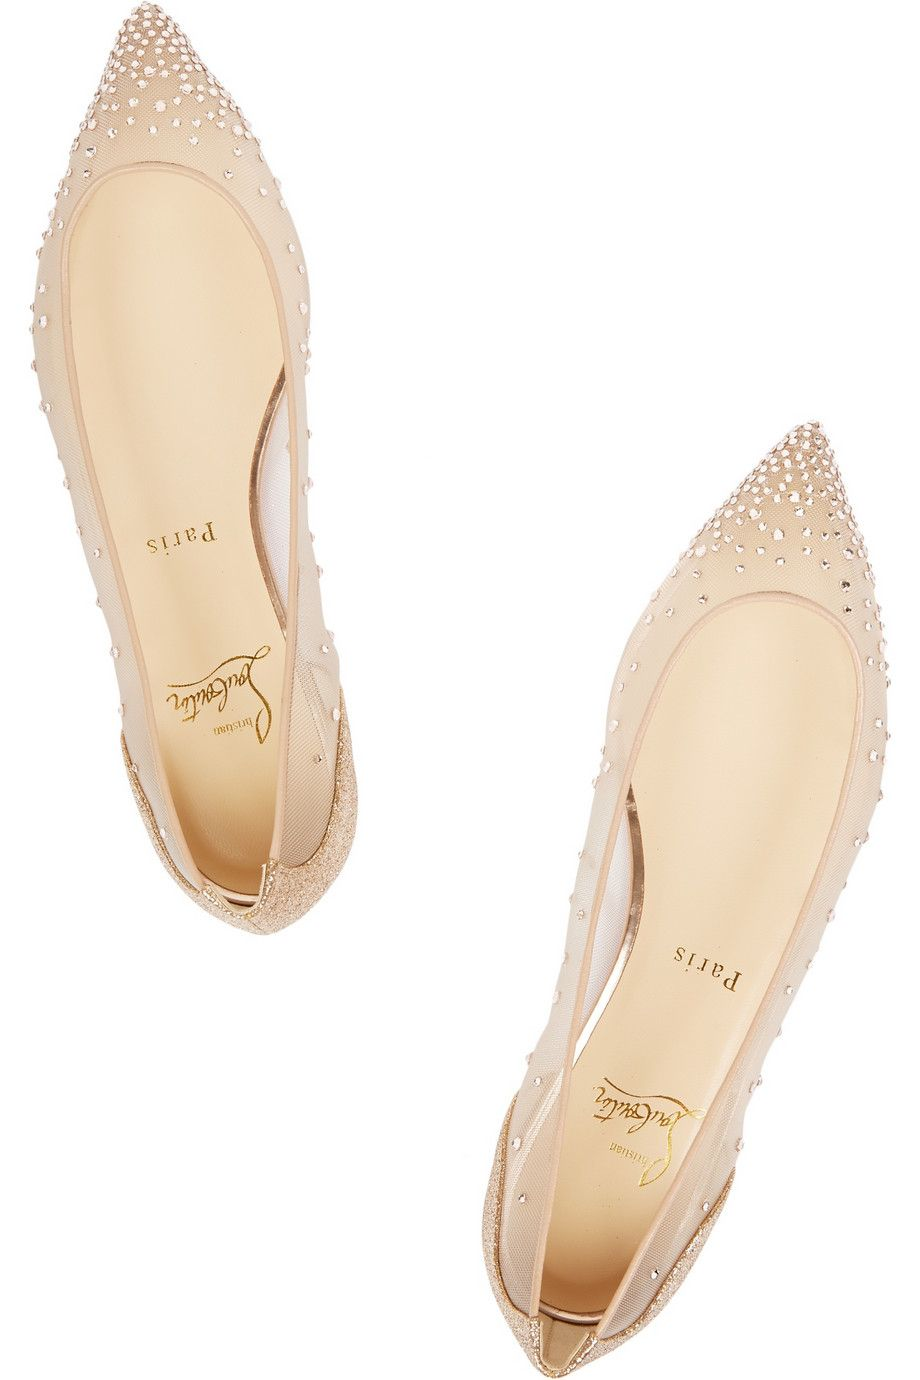 576368d7a6c3 Christian Louboutin Body Strass Embellished Mesh Point-Toe Flats in Beige  (Neutrals)